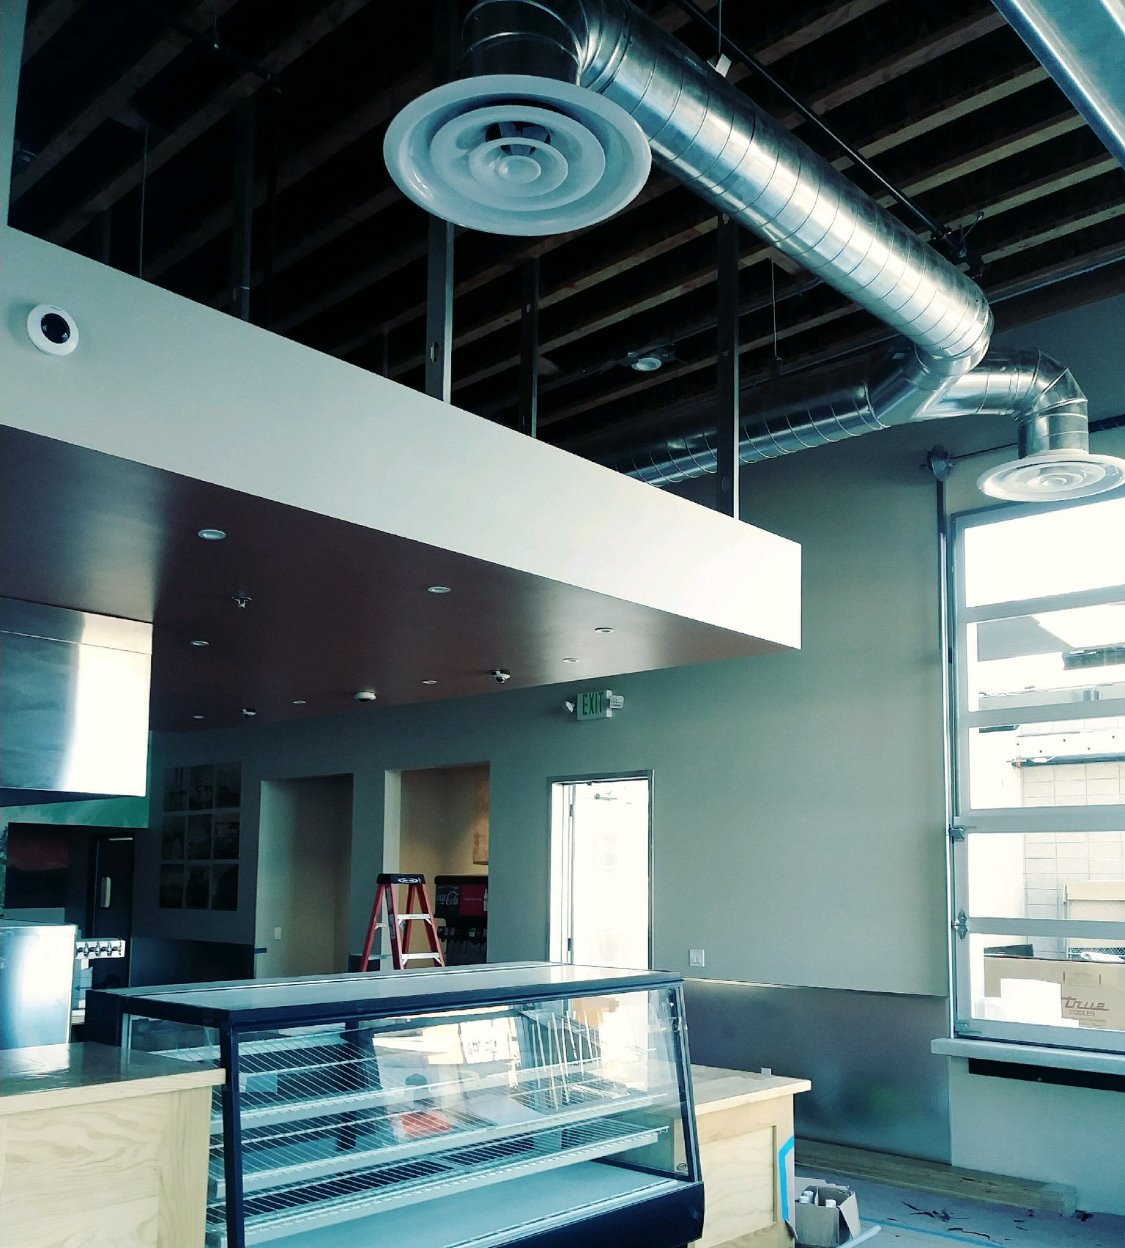 Restaurant Interior Ducting